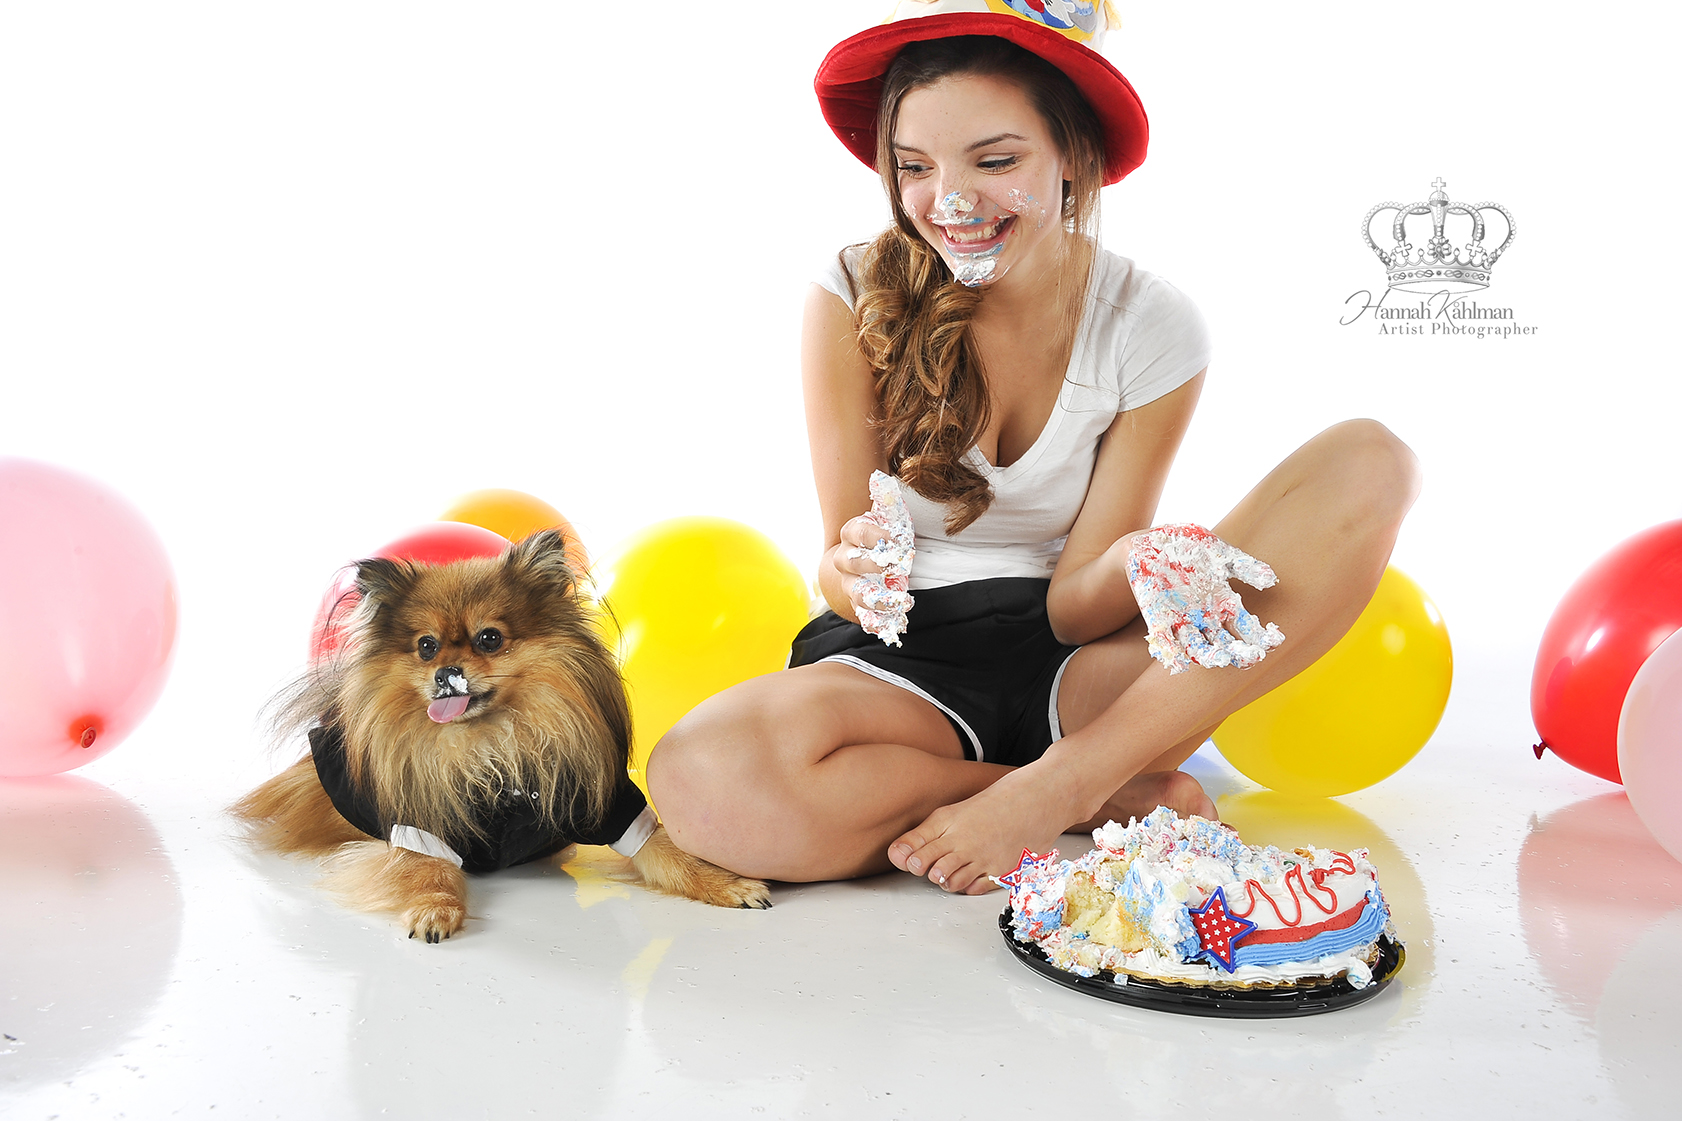 Fun_senior_photo_with_cake_for_birthday_